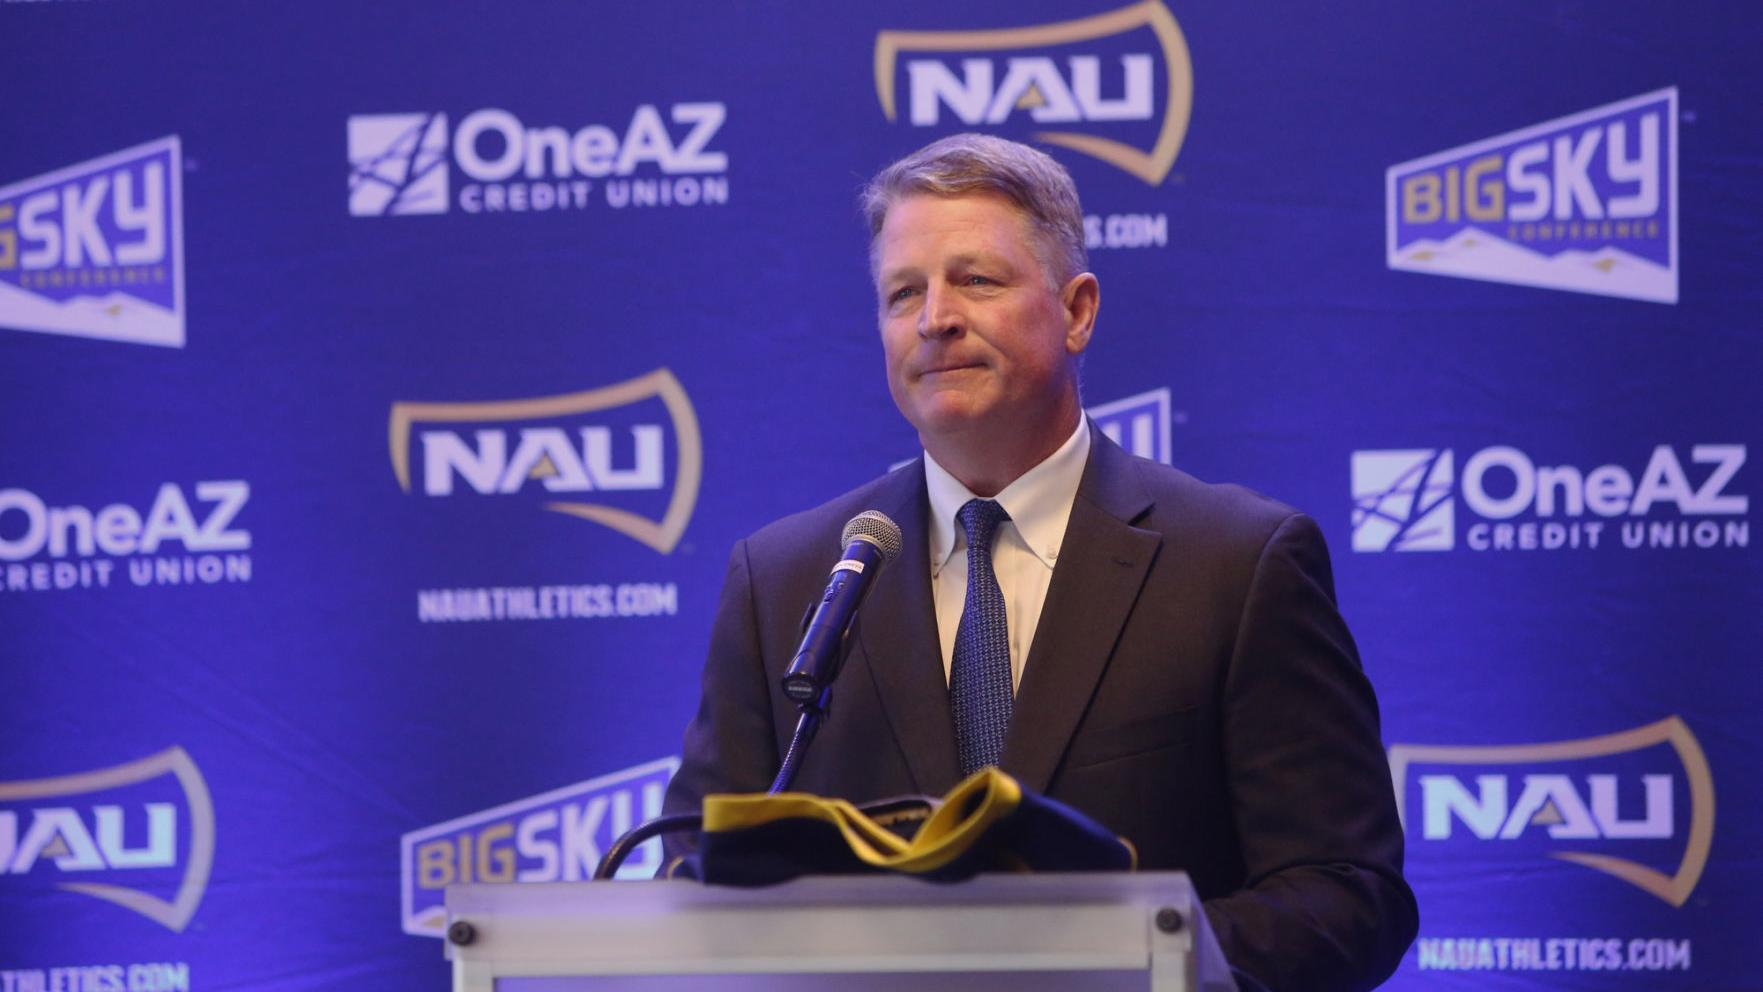 New NAU football coach emotional in introductory press conference